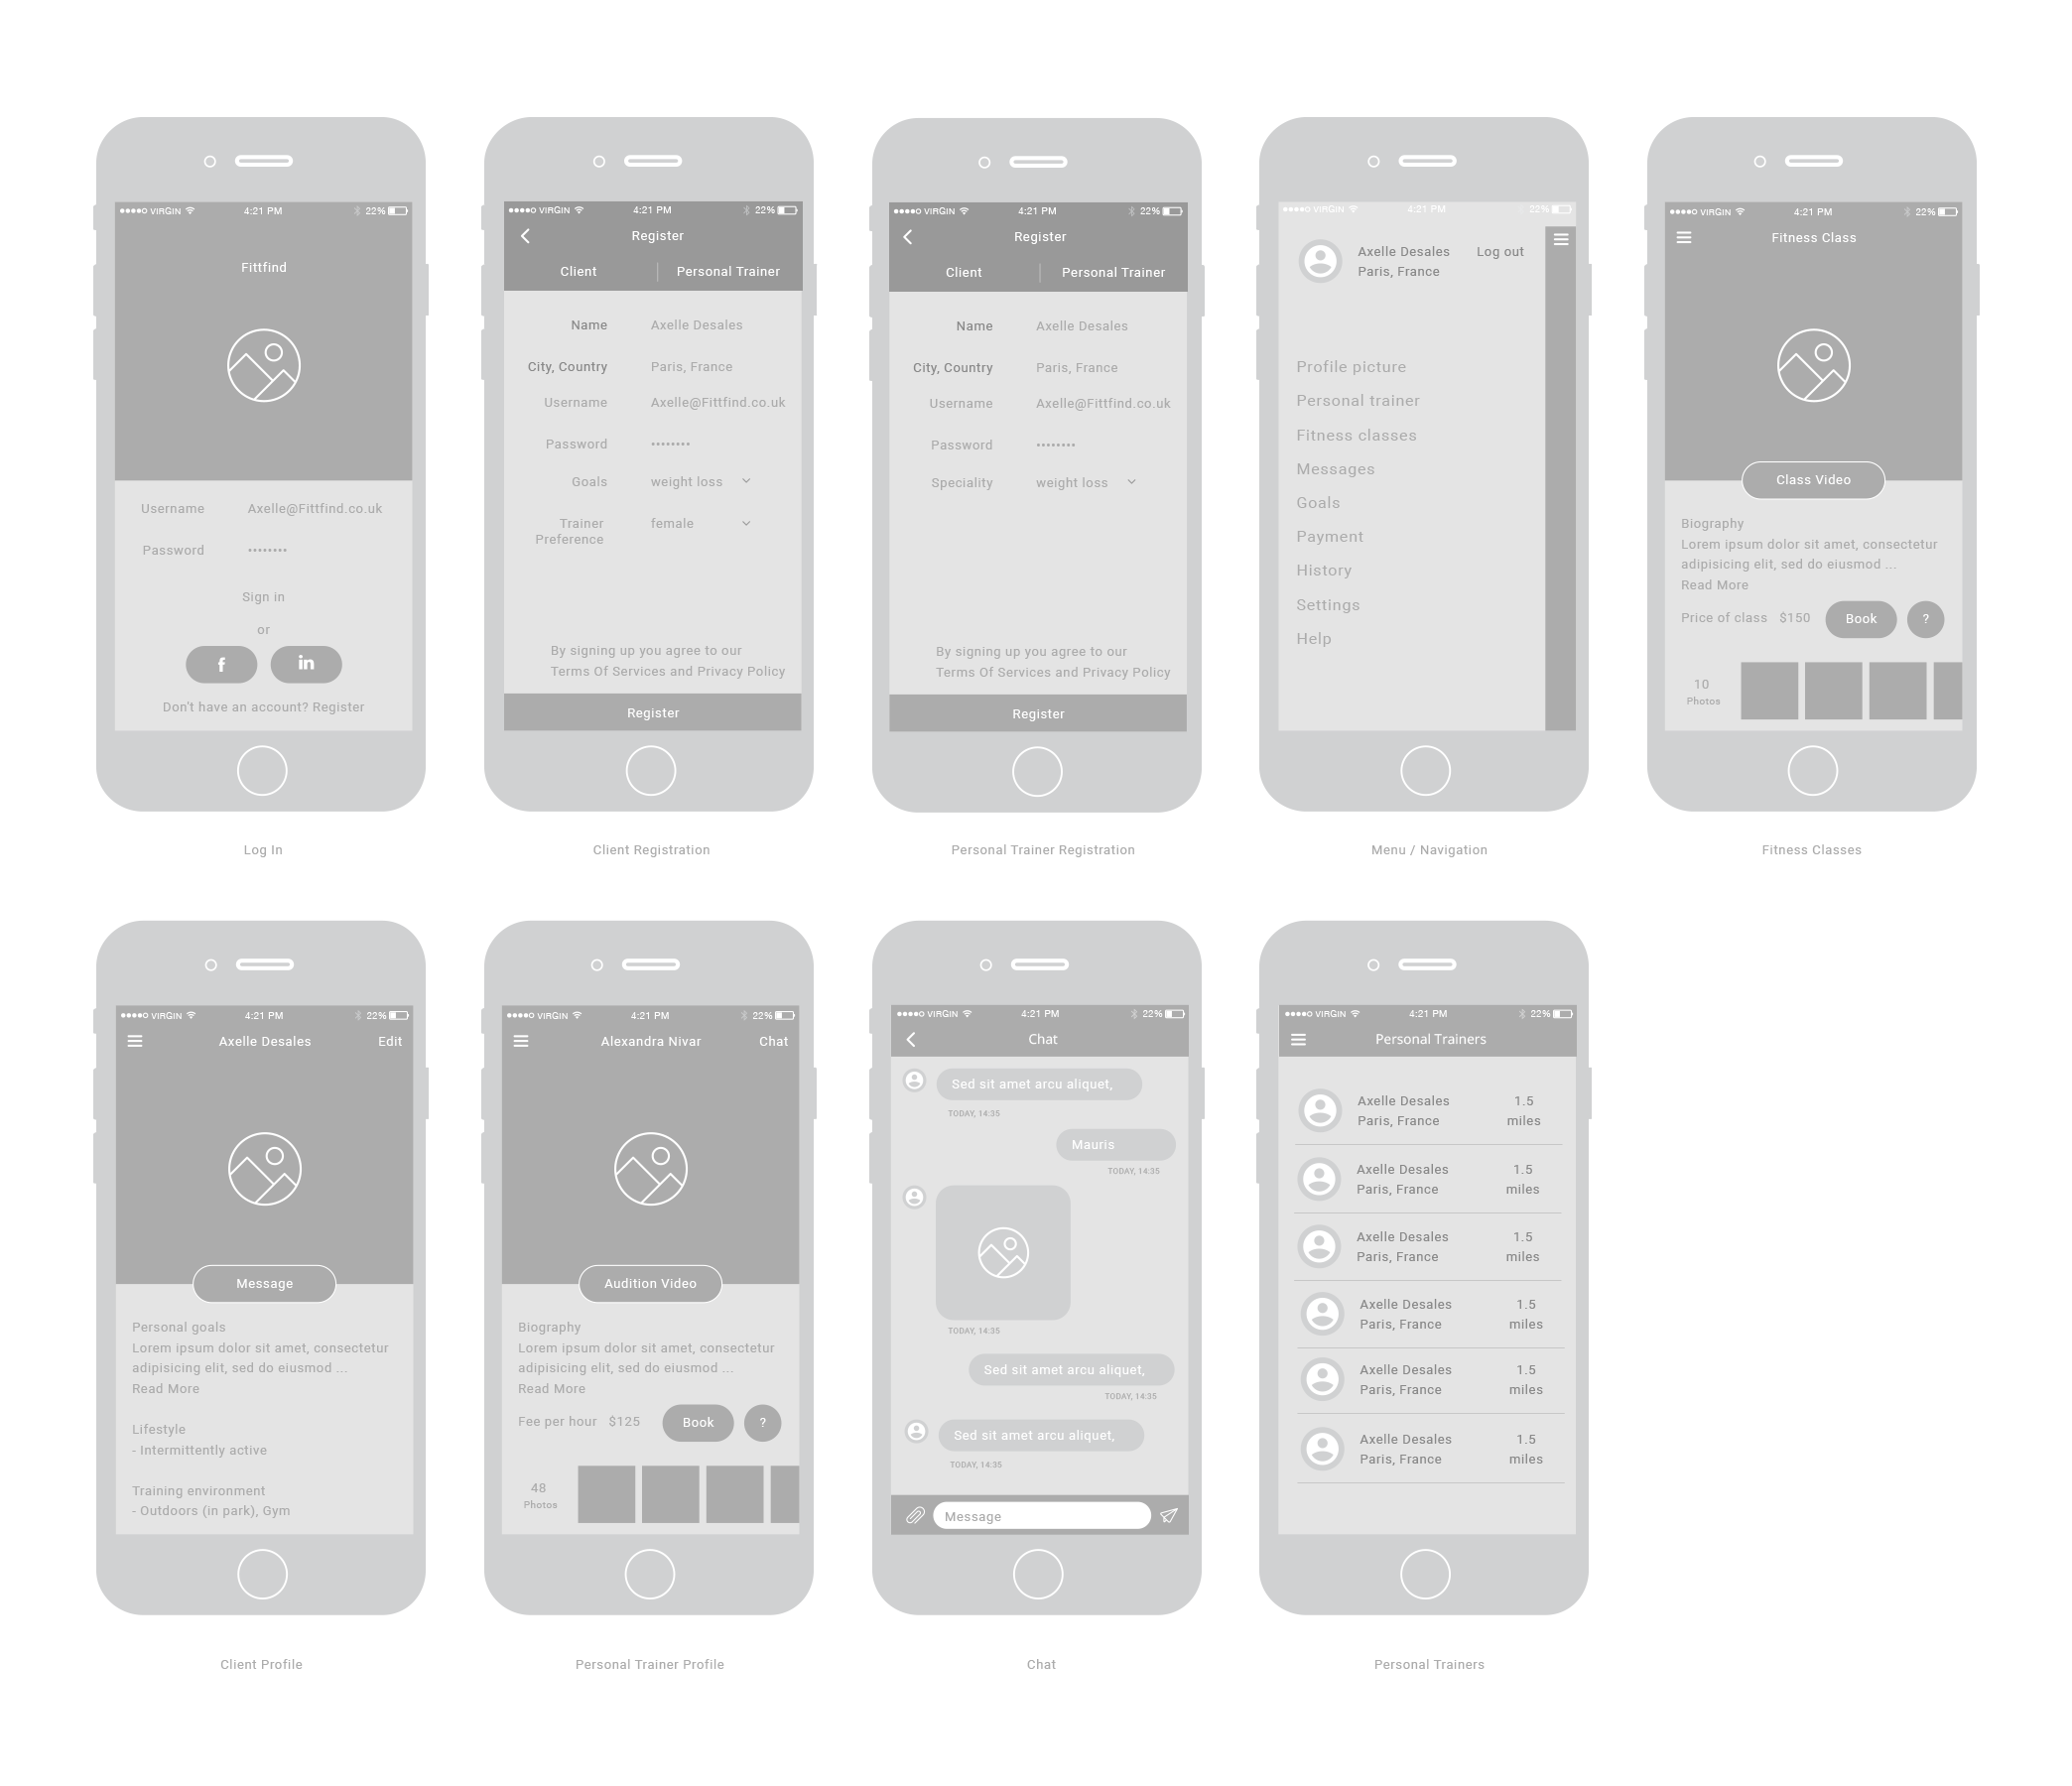 Your chance Create an eye catching app design which allows Personal trainers to be hired via the app